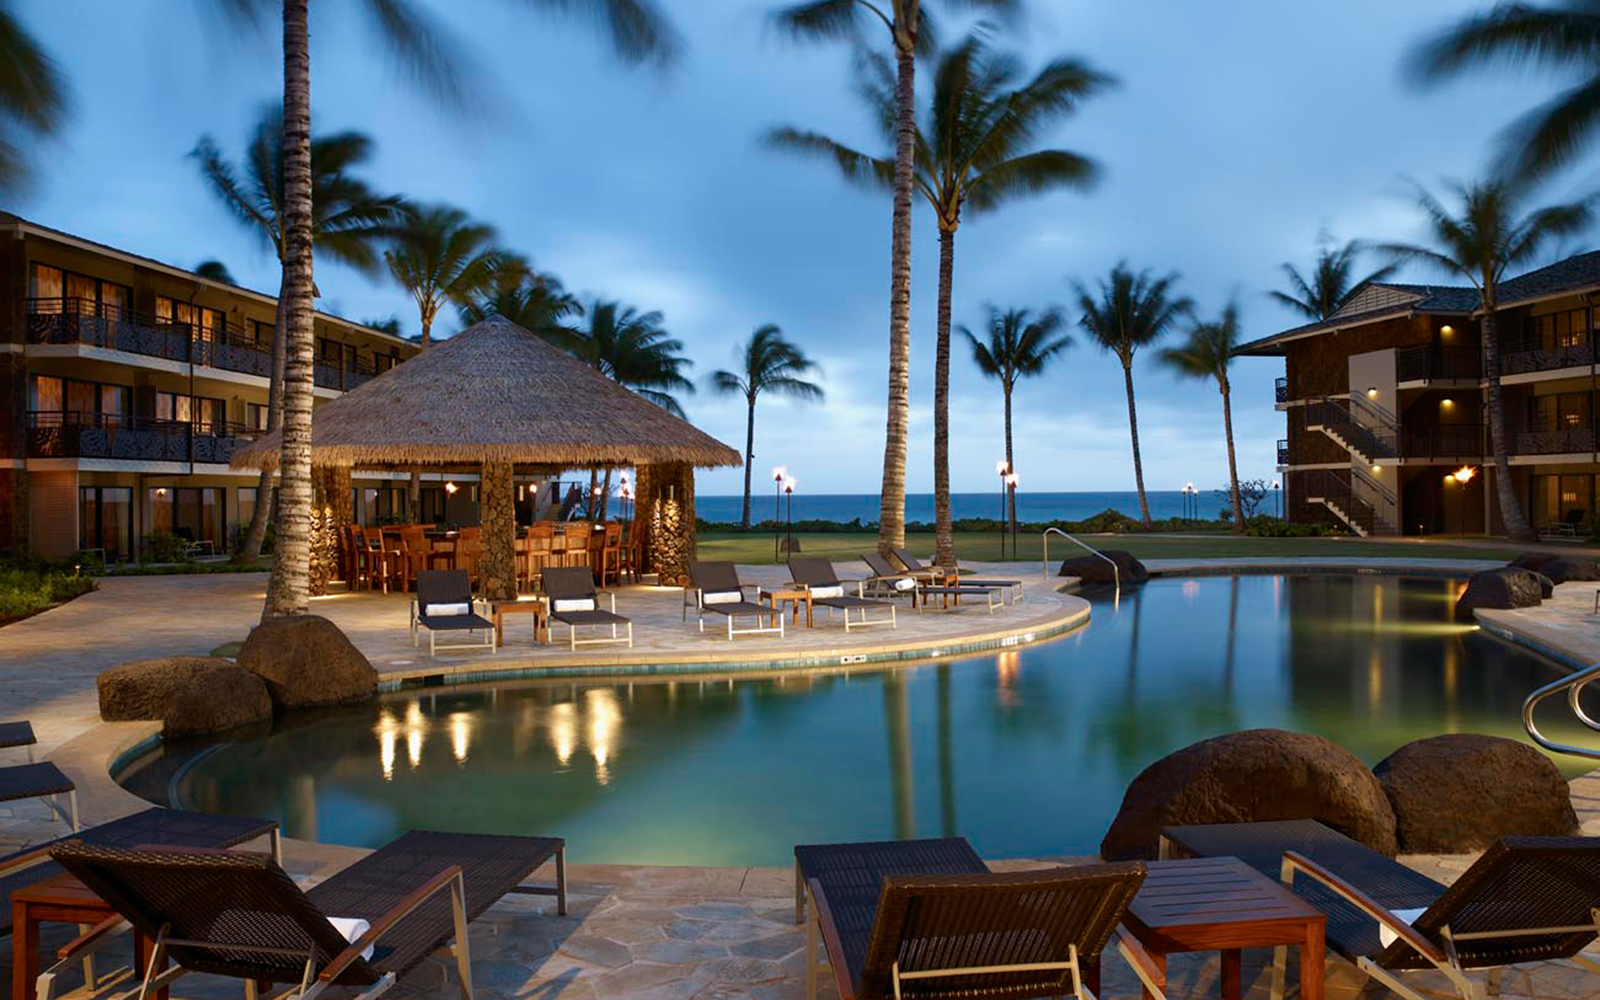 America's Most Romantic Winter Destinations: Koa Kea Resort